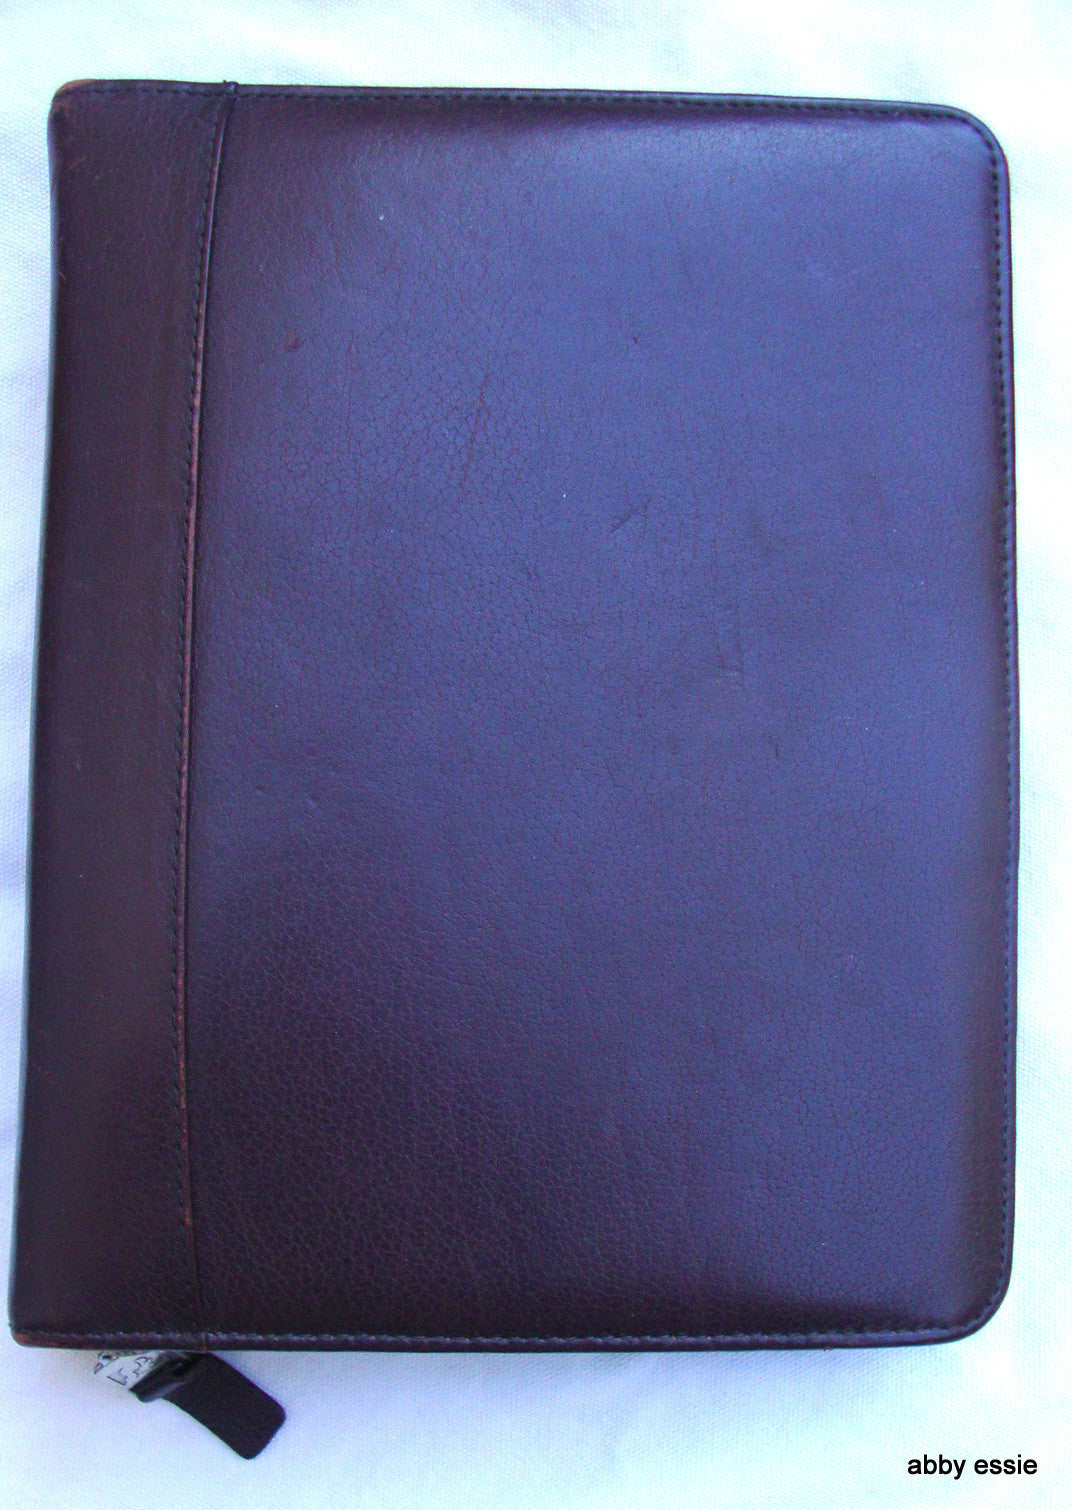 [SOLD] FRANKLIN COVEY PLANNER  BROWN LEATHER WITH ADDRESS DREAM MANAGEMENT PLANNER GUID